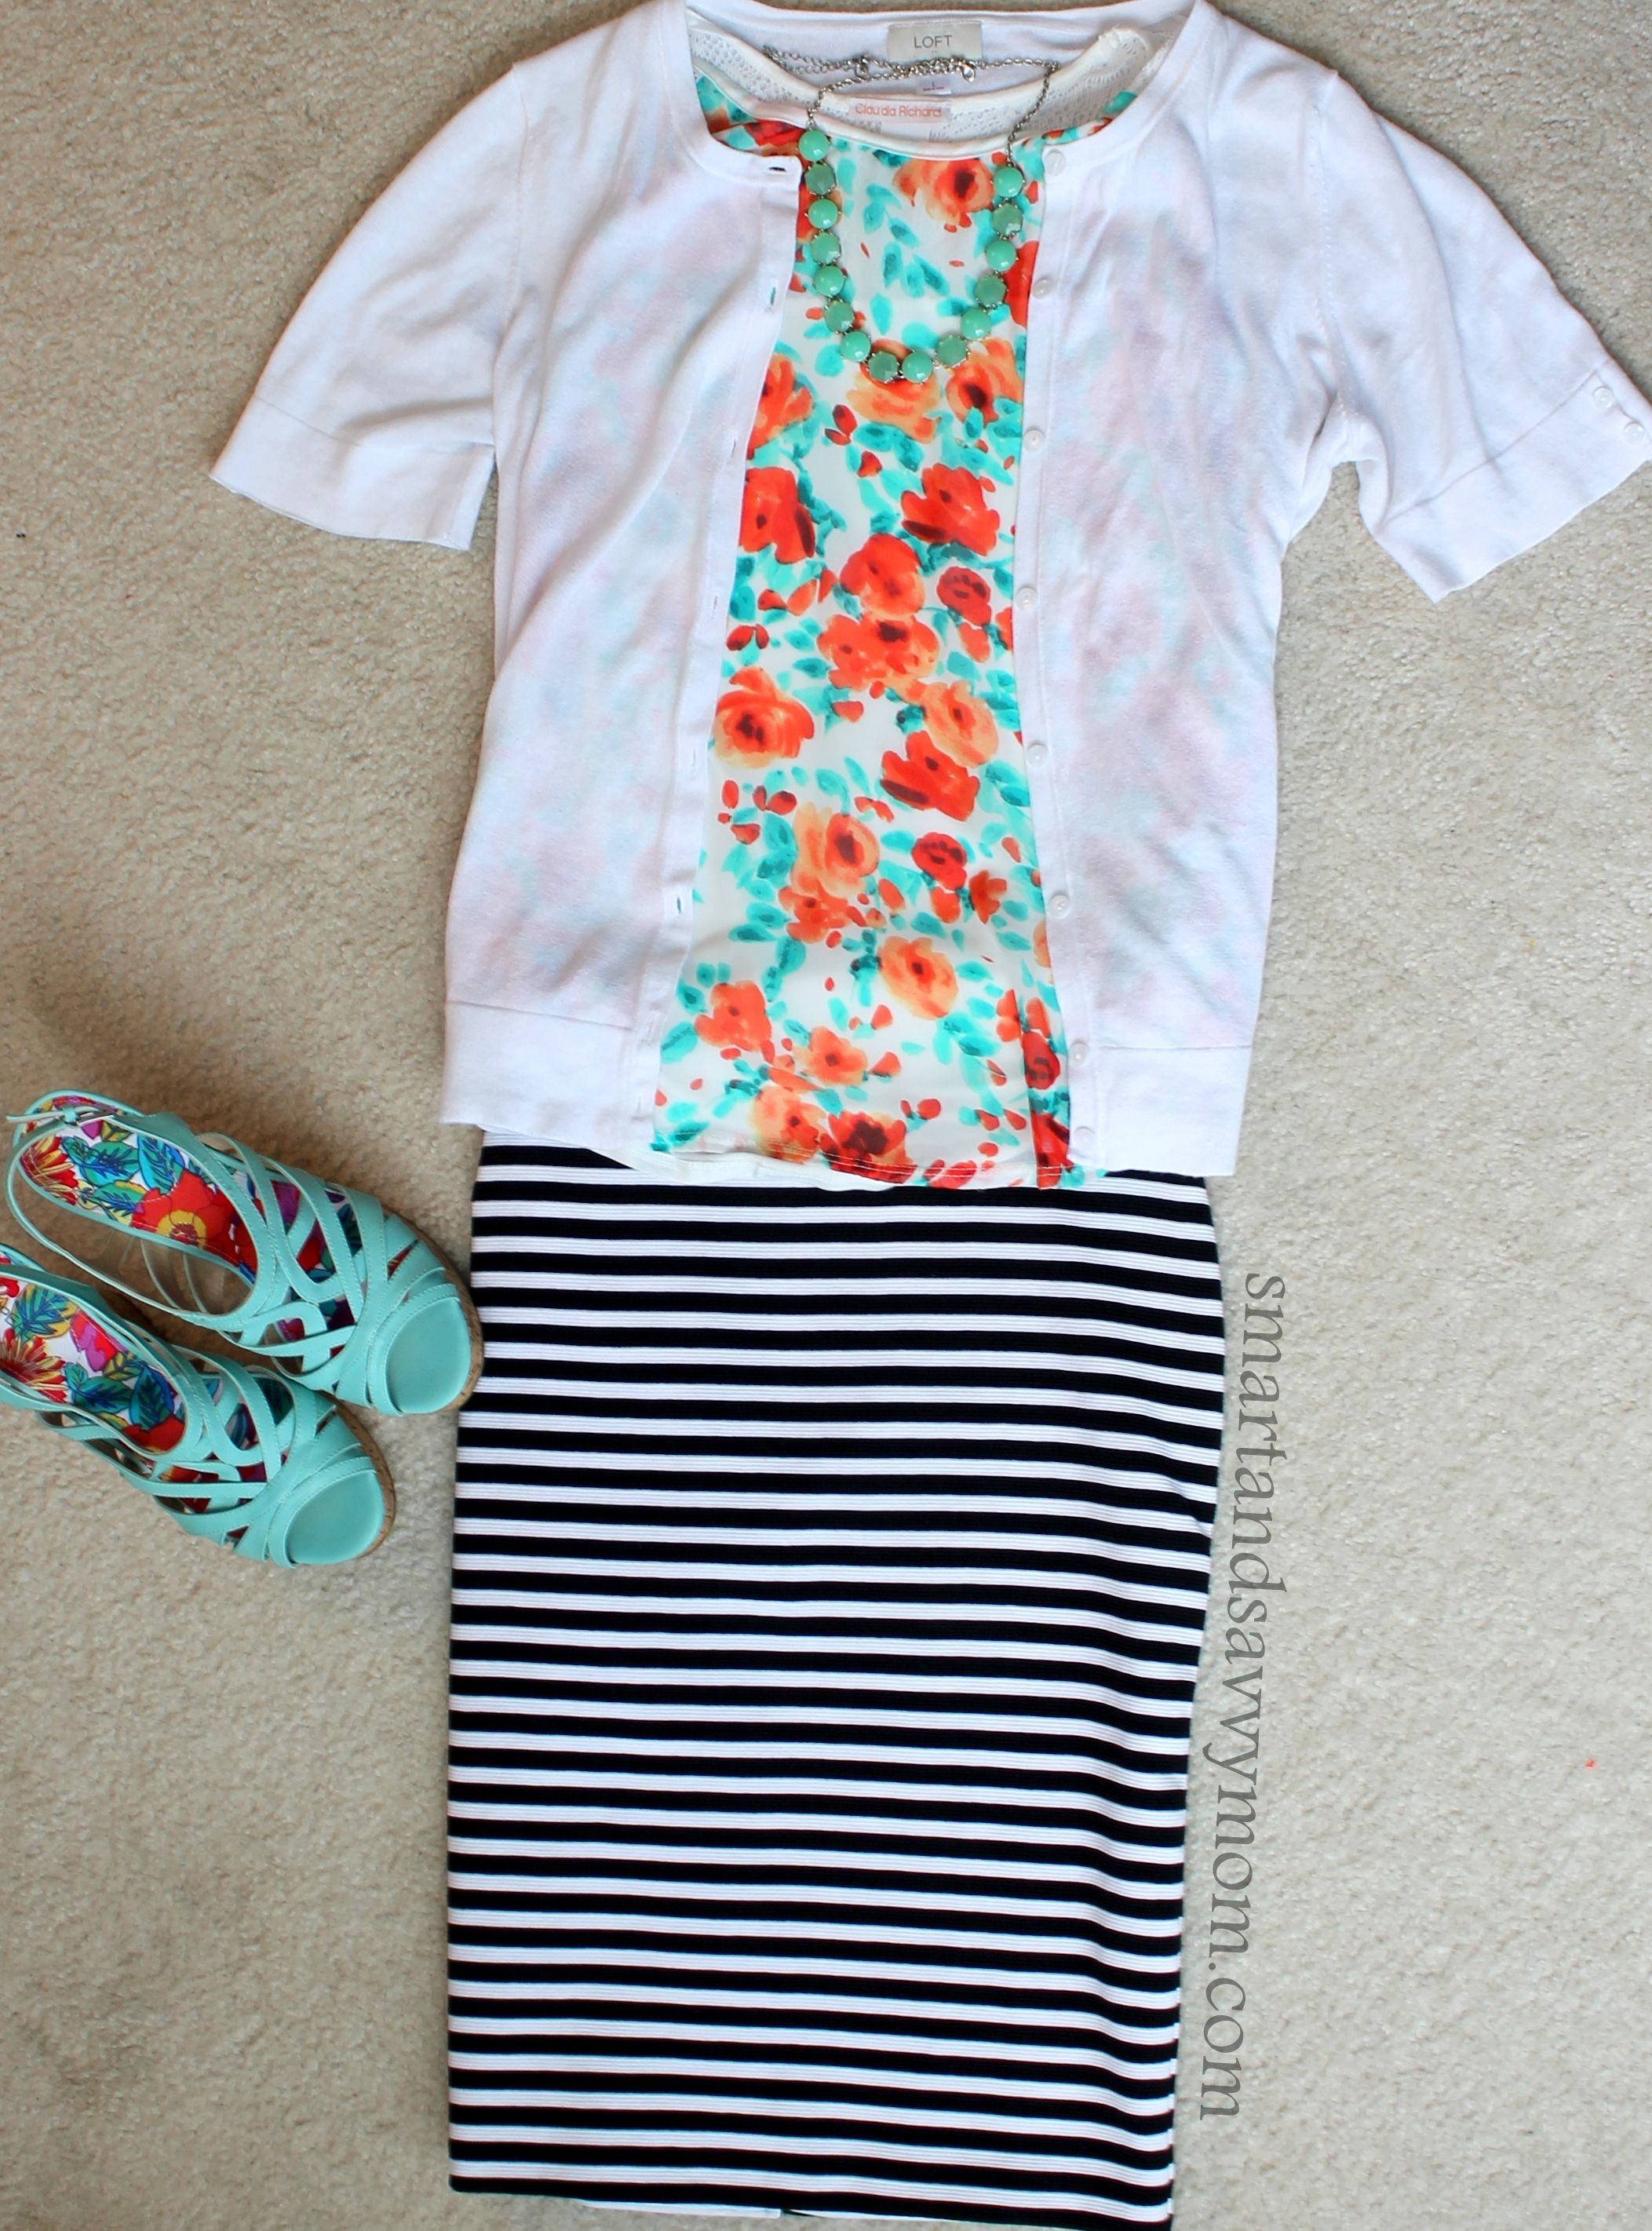 mint and coral floral print top with black and white striped skirt from Target and mint wedges easy modest outfit idea